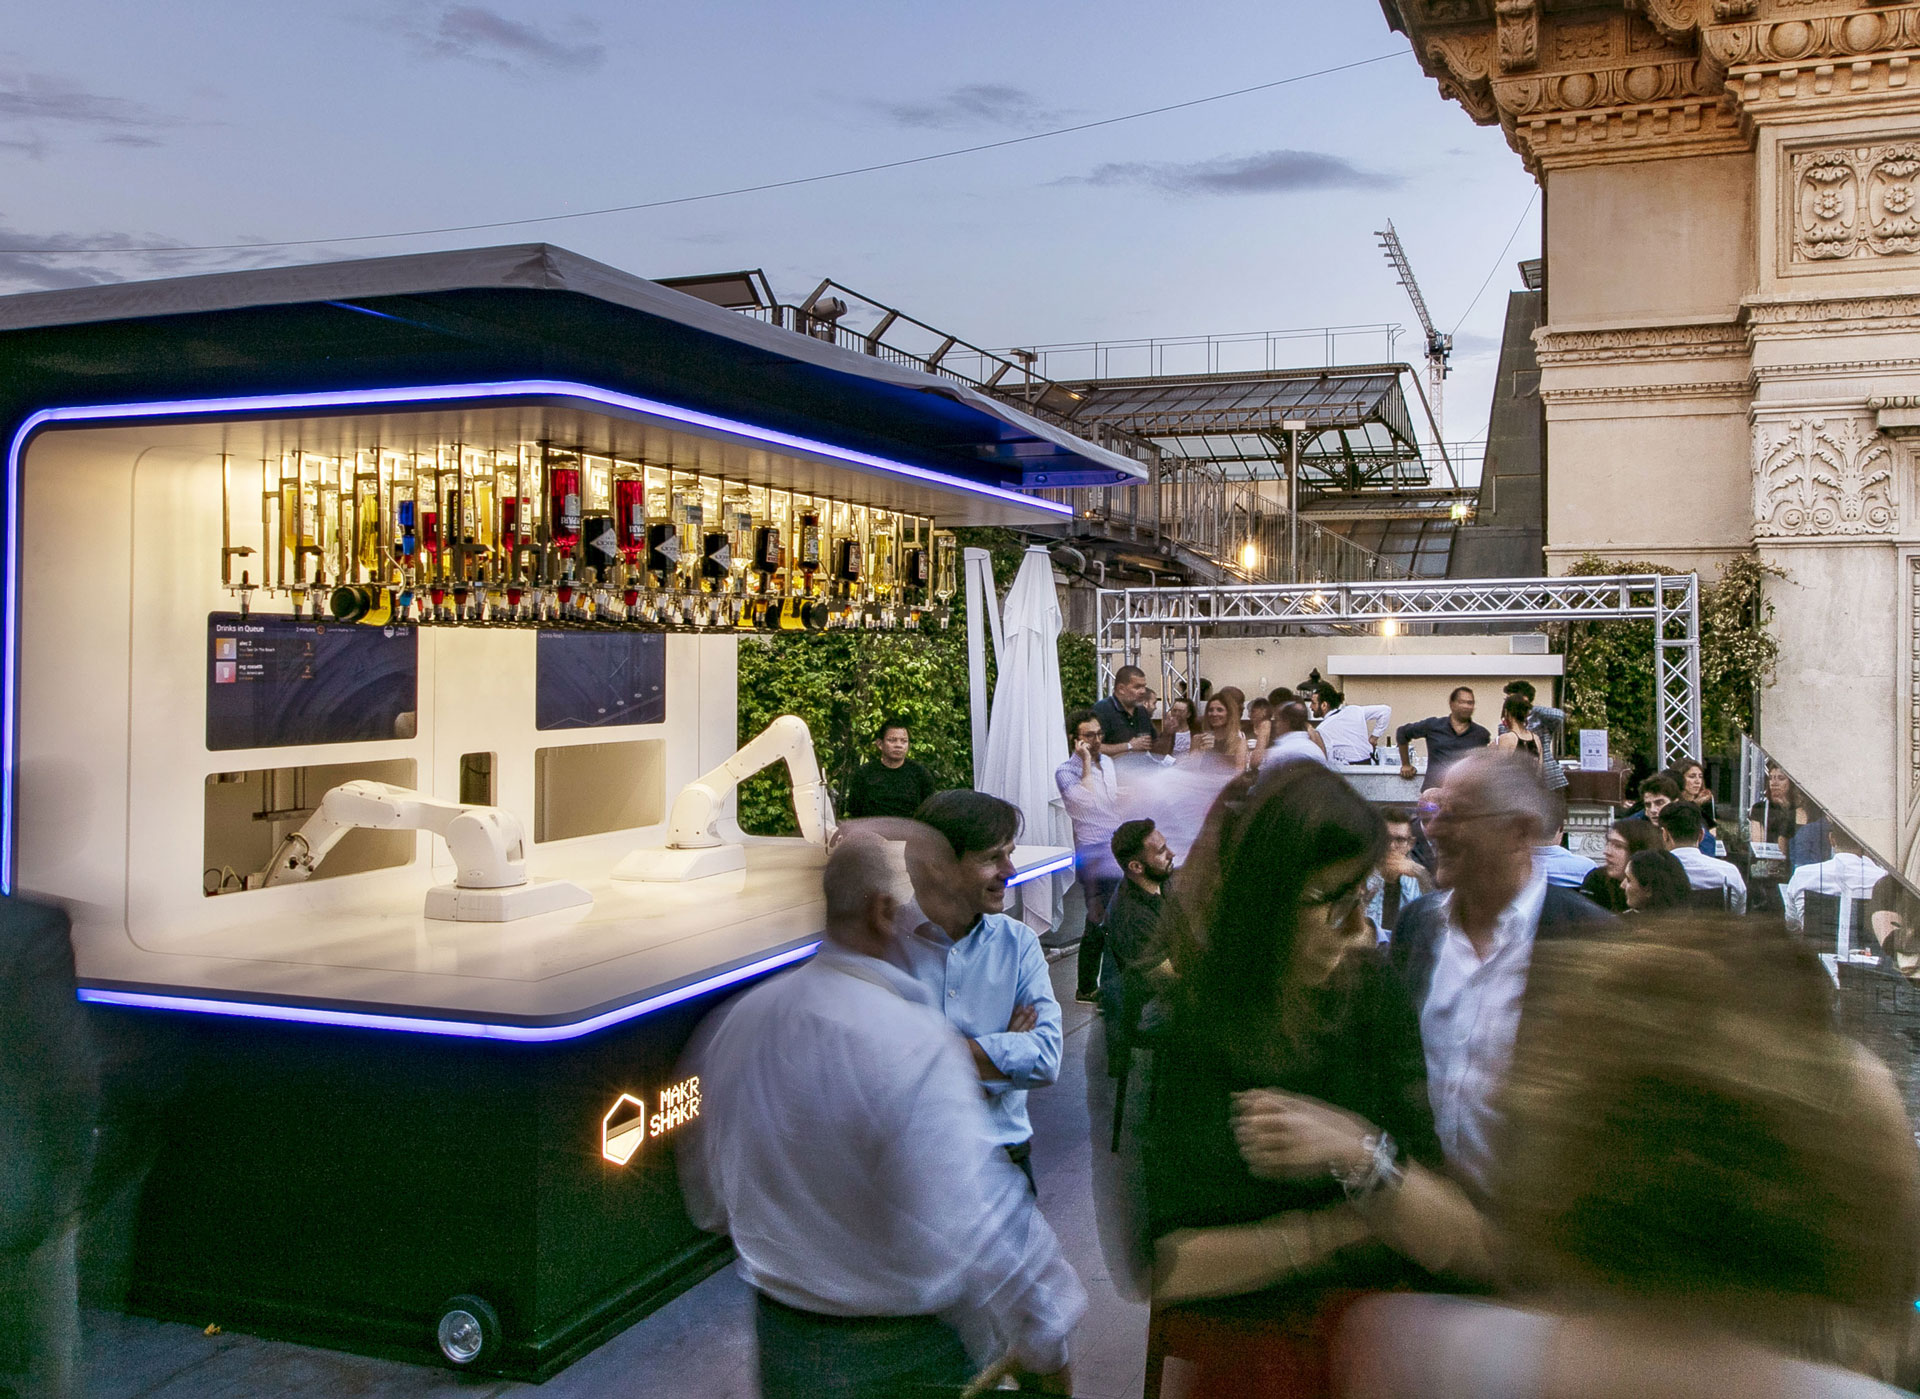 """Robotic bar opens in Milan to """"empower"""" city's drinkers"""